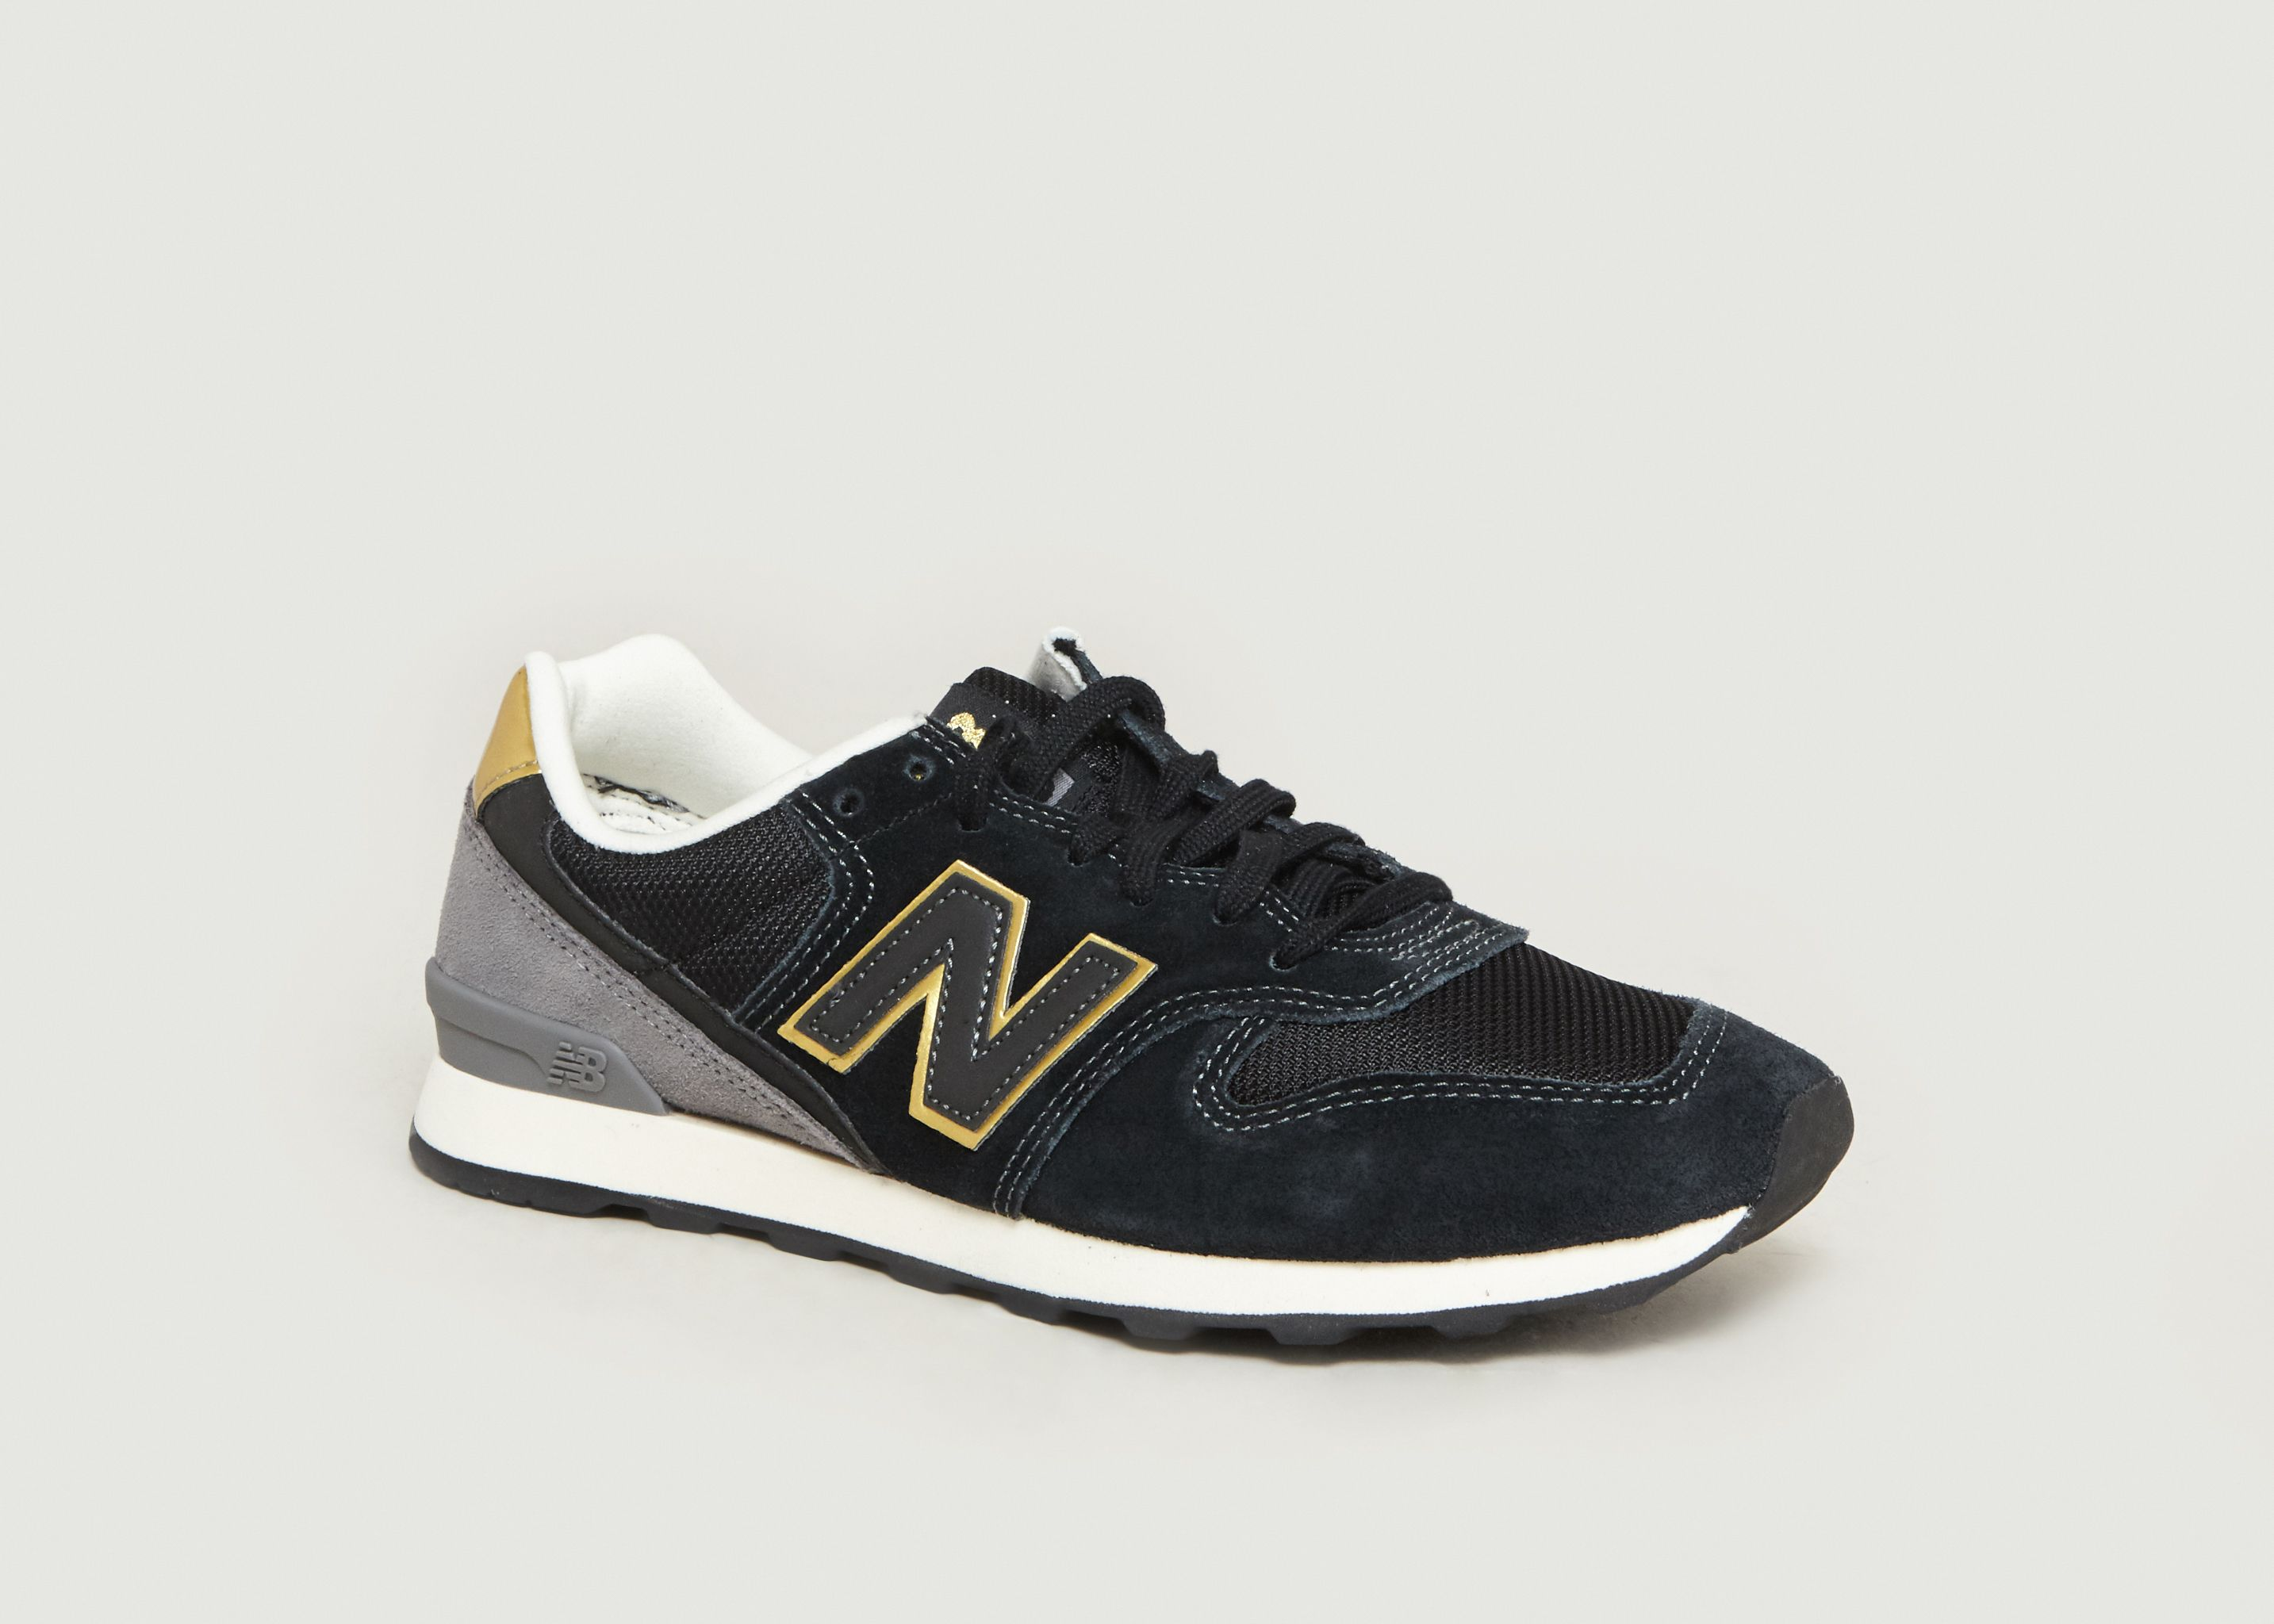 91350c0bf5 Sneakers Wr966 Sneakers Wr966 New New BalanceL'exception Sneakers Noir  Wr966 BalanceL'exception Noir f76ygvbY